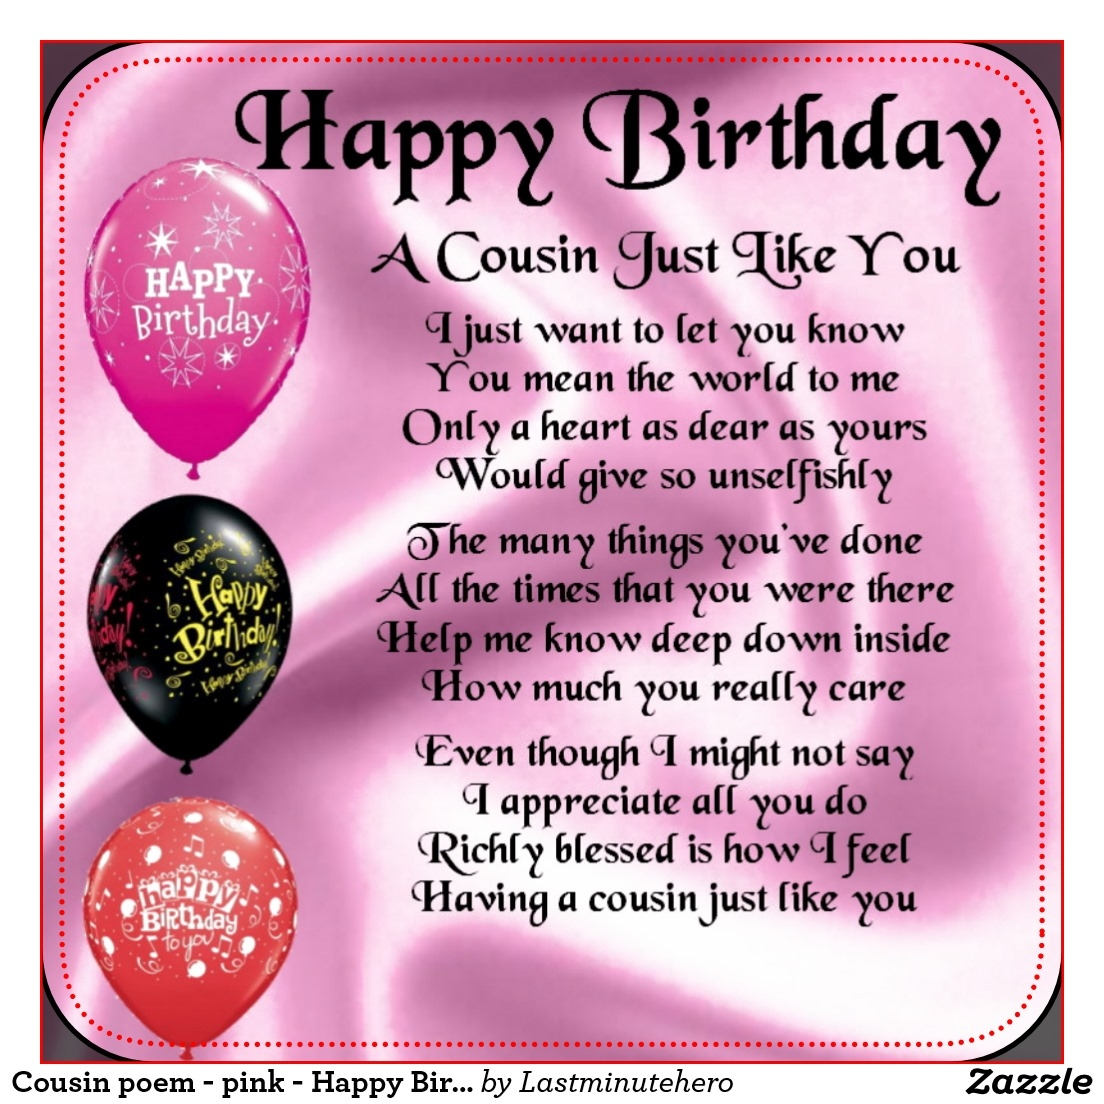 happy birthday cousin images and quotes ; beautiful-happy-birthday-poems-for-my-cousin-12-happy-birthday-wishes-within-happy-birthday-cousin-quotes-funny-design